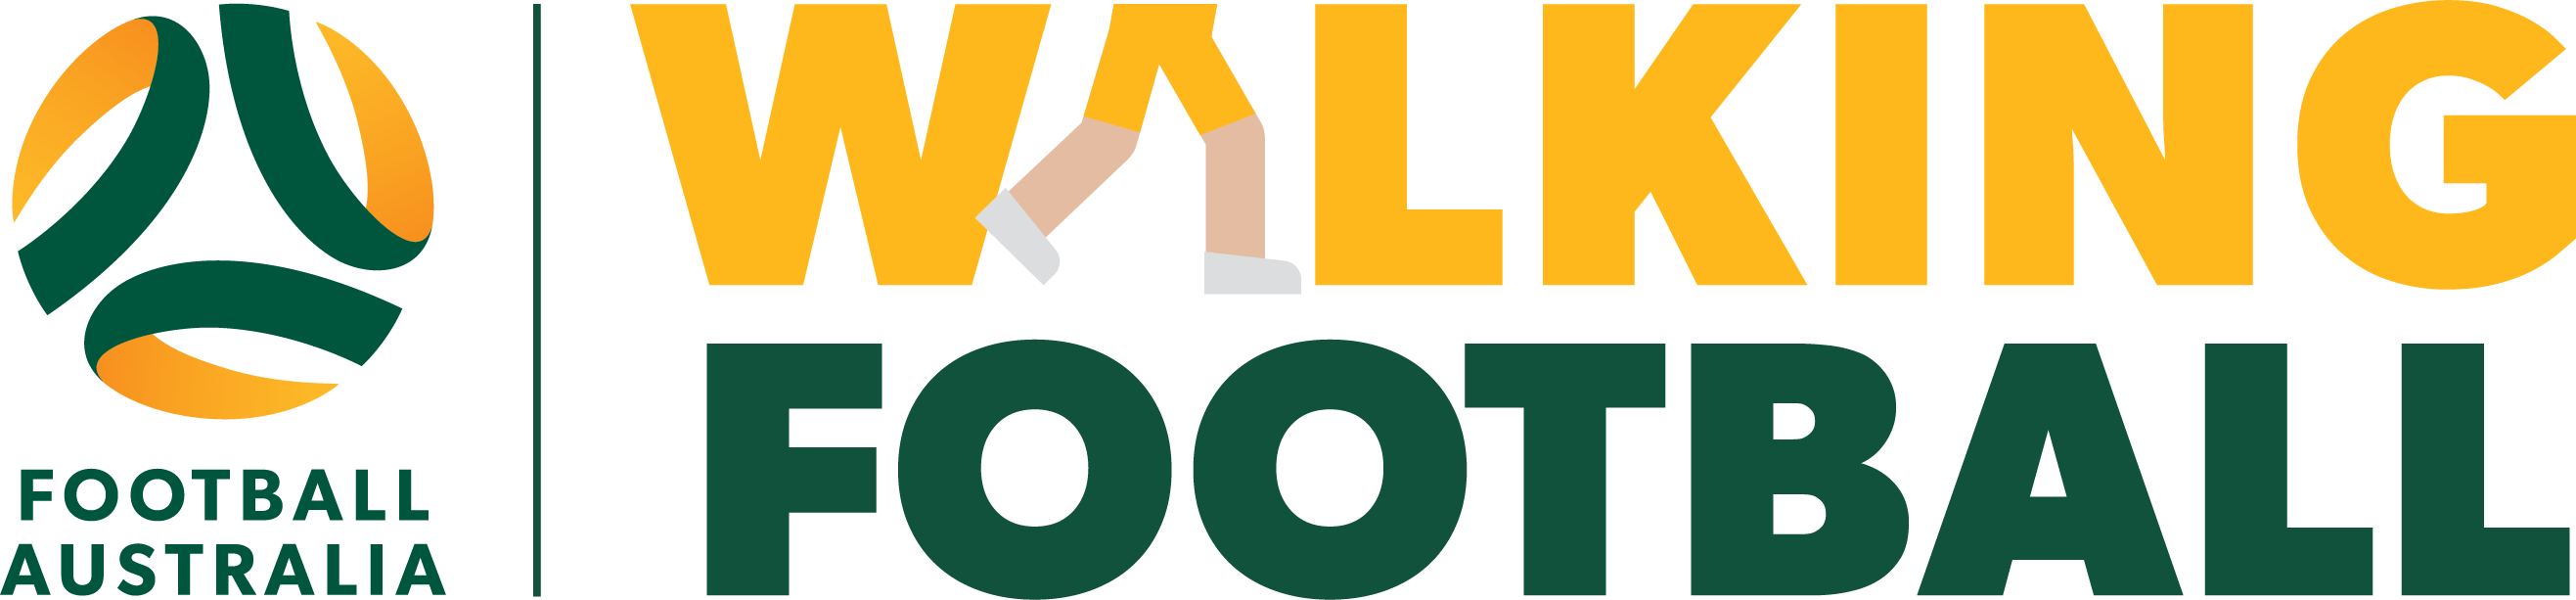 Walking Football Football Australia logo